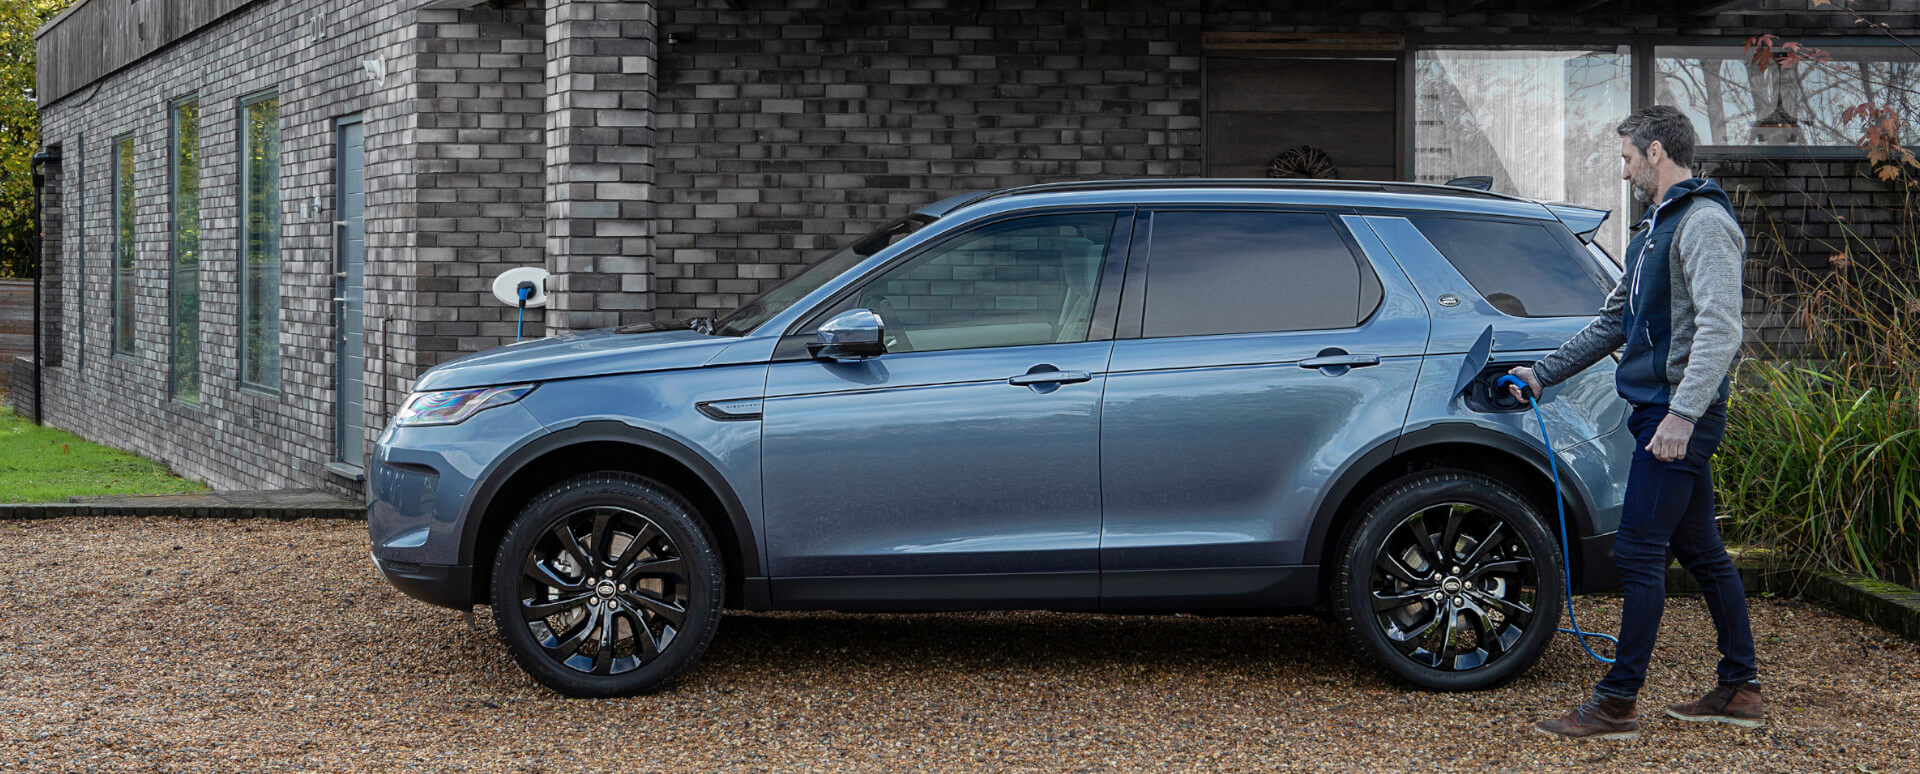 Land Rover Discovery Sport PHEV Charging